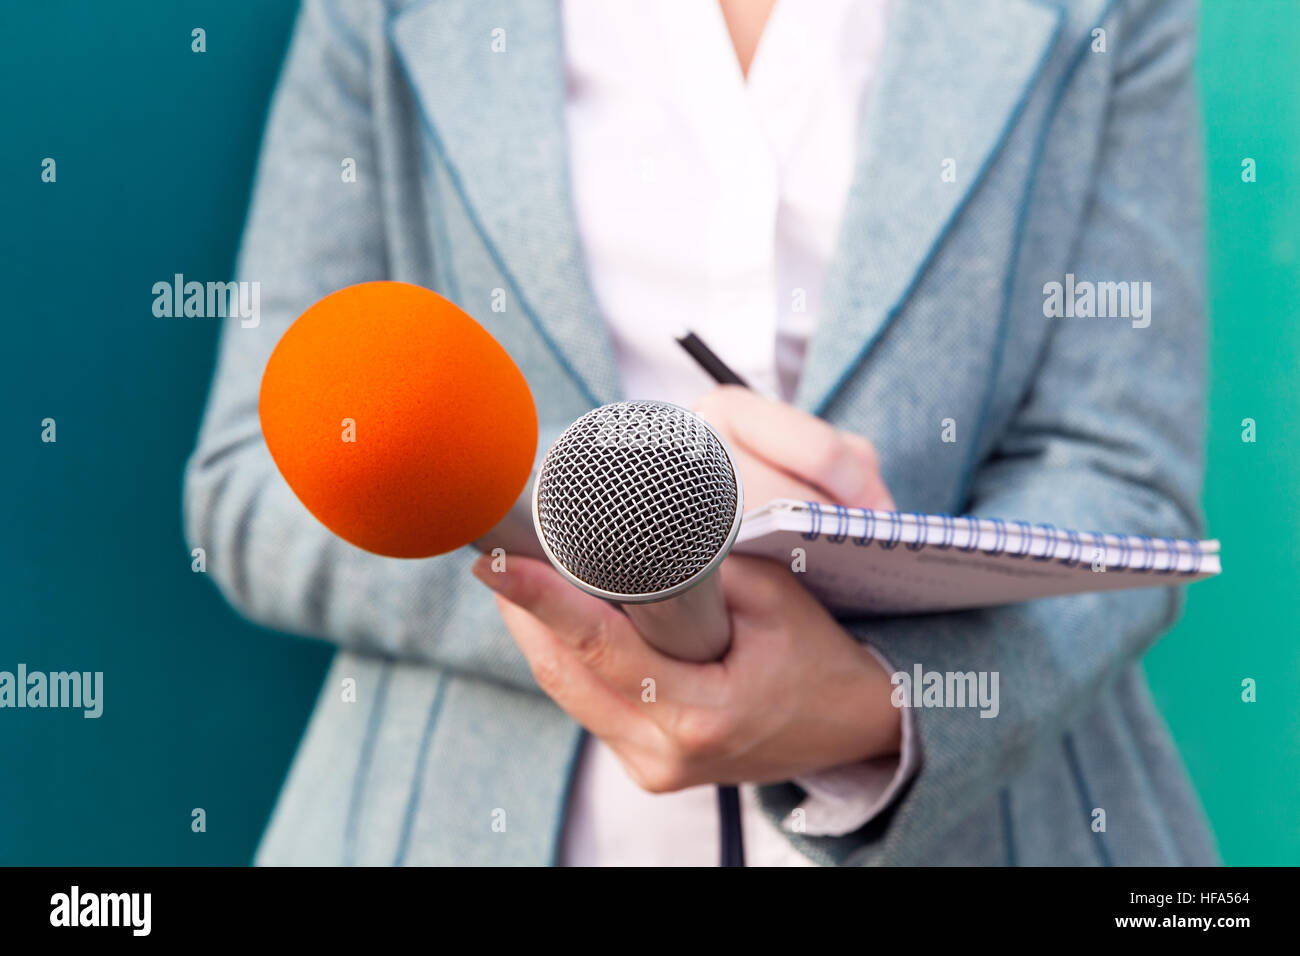 Female reporter taking notes at press conference - Stock Image